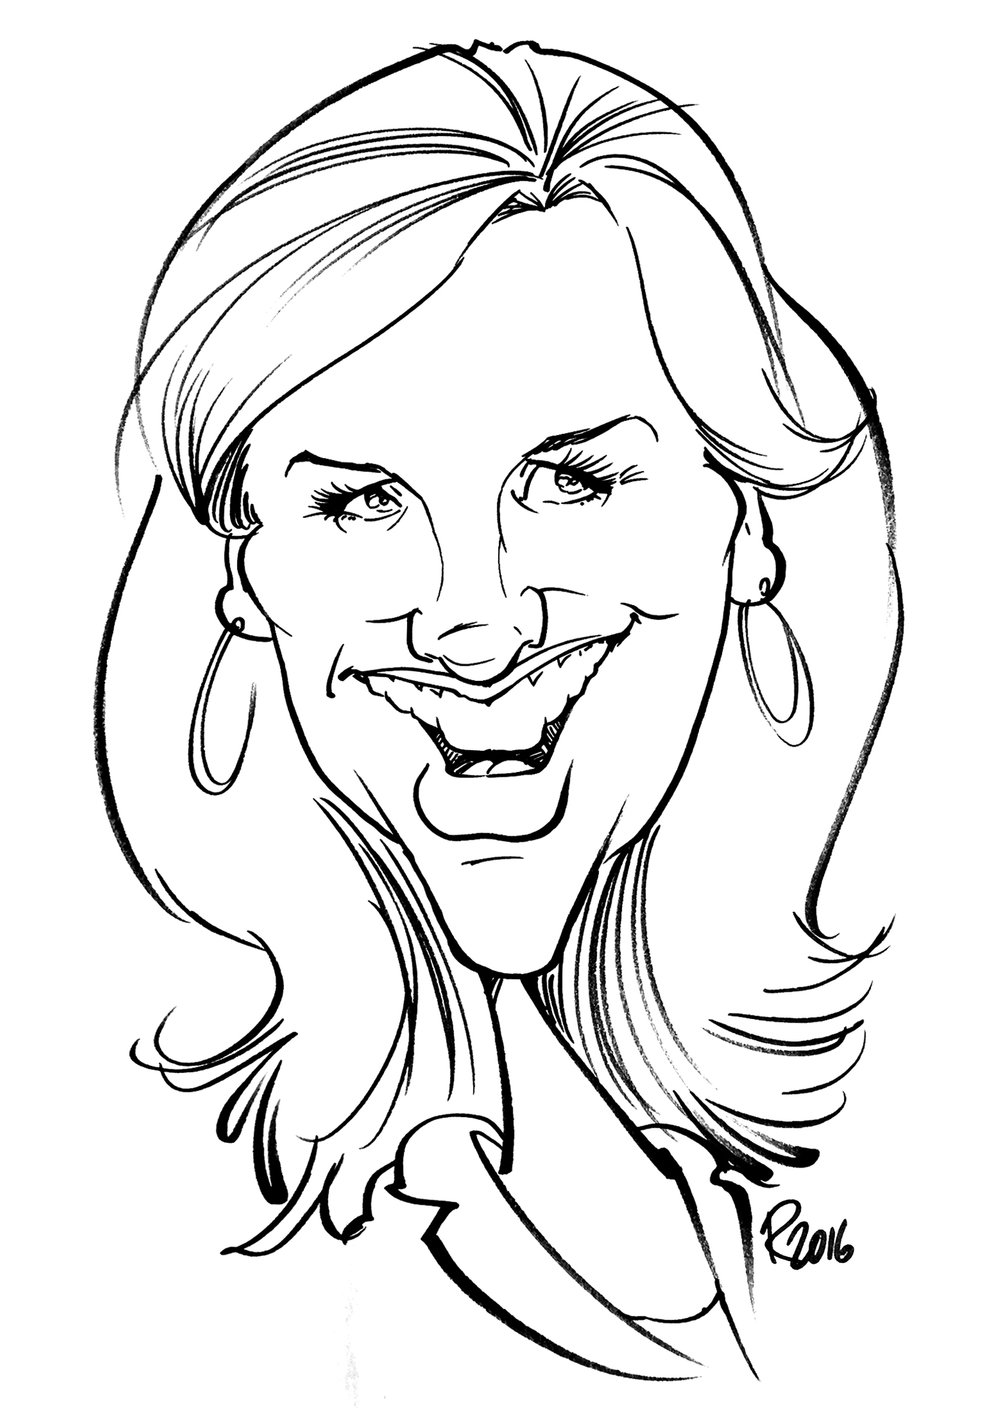 Traditional Hand-Drawn Caricature Sample 14